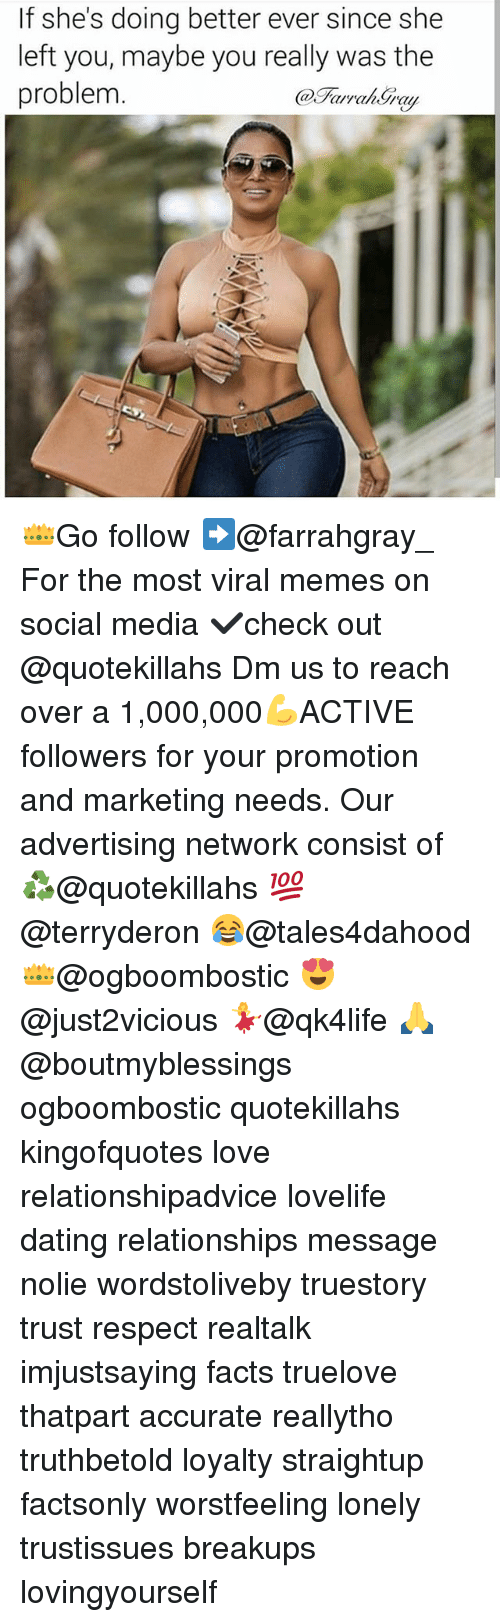 Dating, Facts, and Love: If she's doing better ever since she  left you, maybe you really was the  problem 👑Go follow ➡@farrahgray_ For the most viral memes on social media ✔check out @quotekillahs Dm us to reach over a 1,000,000💪ACTIVE followers for your promotion and marketing needs. Our advertising network consist of ♻@quotekillahs 💯@terryderon 😂@tales4dahood 👑@ogboombostic 😍@just2vicious 💃@qk4life 🙏@boutmyblessings ogboombostic quotekillahs kingofquotes love relationshipadvice lovelife dating relationships message nolie wordstoliveby truestory trust respect realtalk imjustsaying facts truelove thatpart accurate reallytho truthbetold loyalty straightup factsonly worstfeeling lonely trustissues breakups lovingyourself